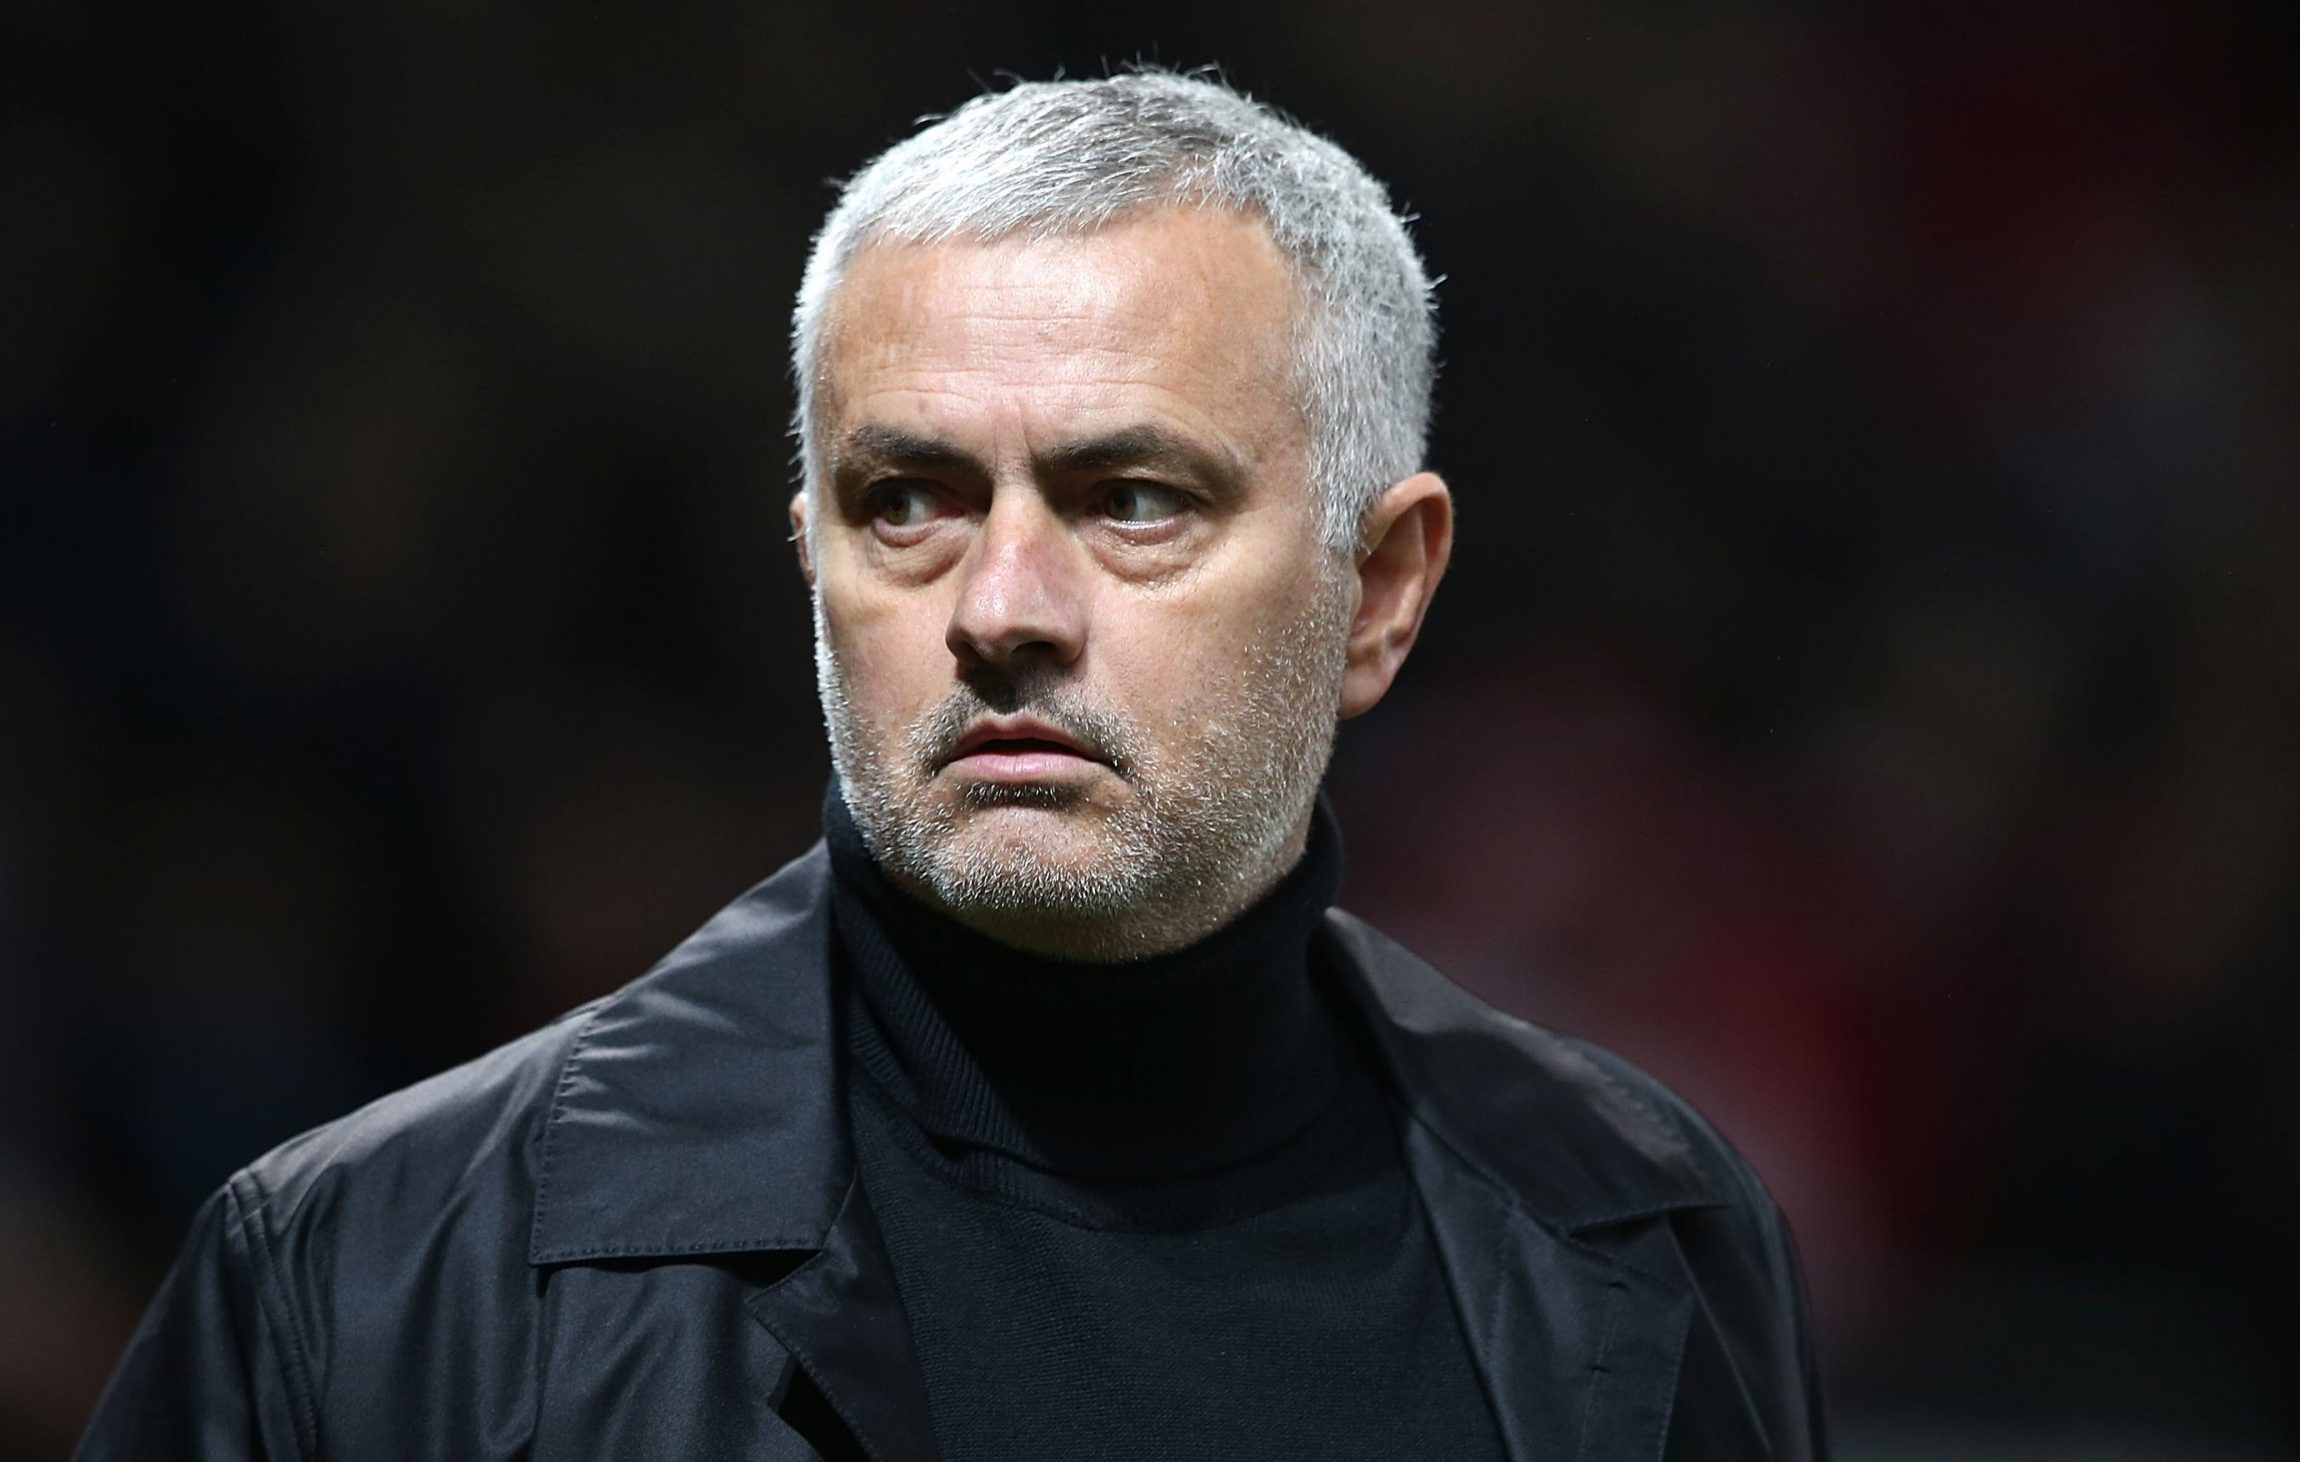 Manchester United determined to sign Lyon midfielder Tanguy N'Dombele ahead of Manchester City